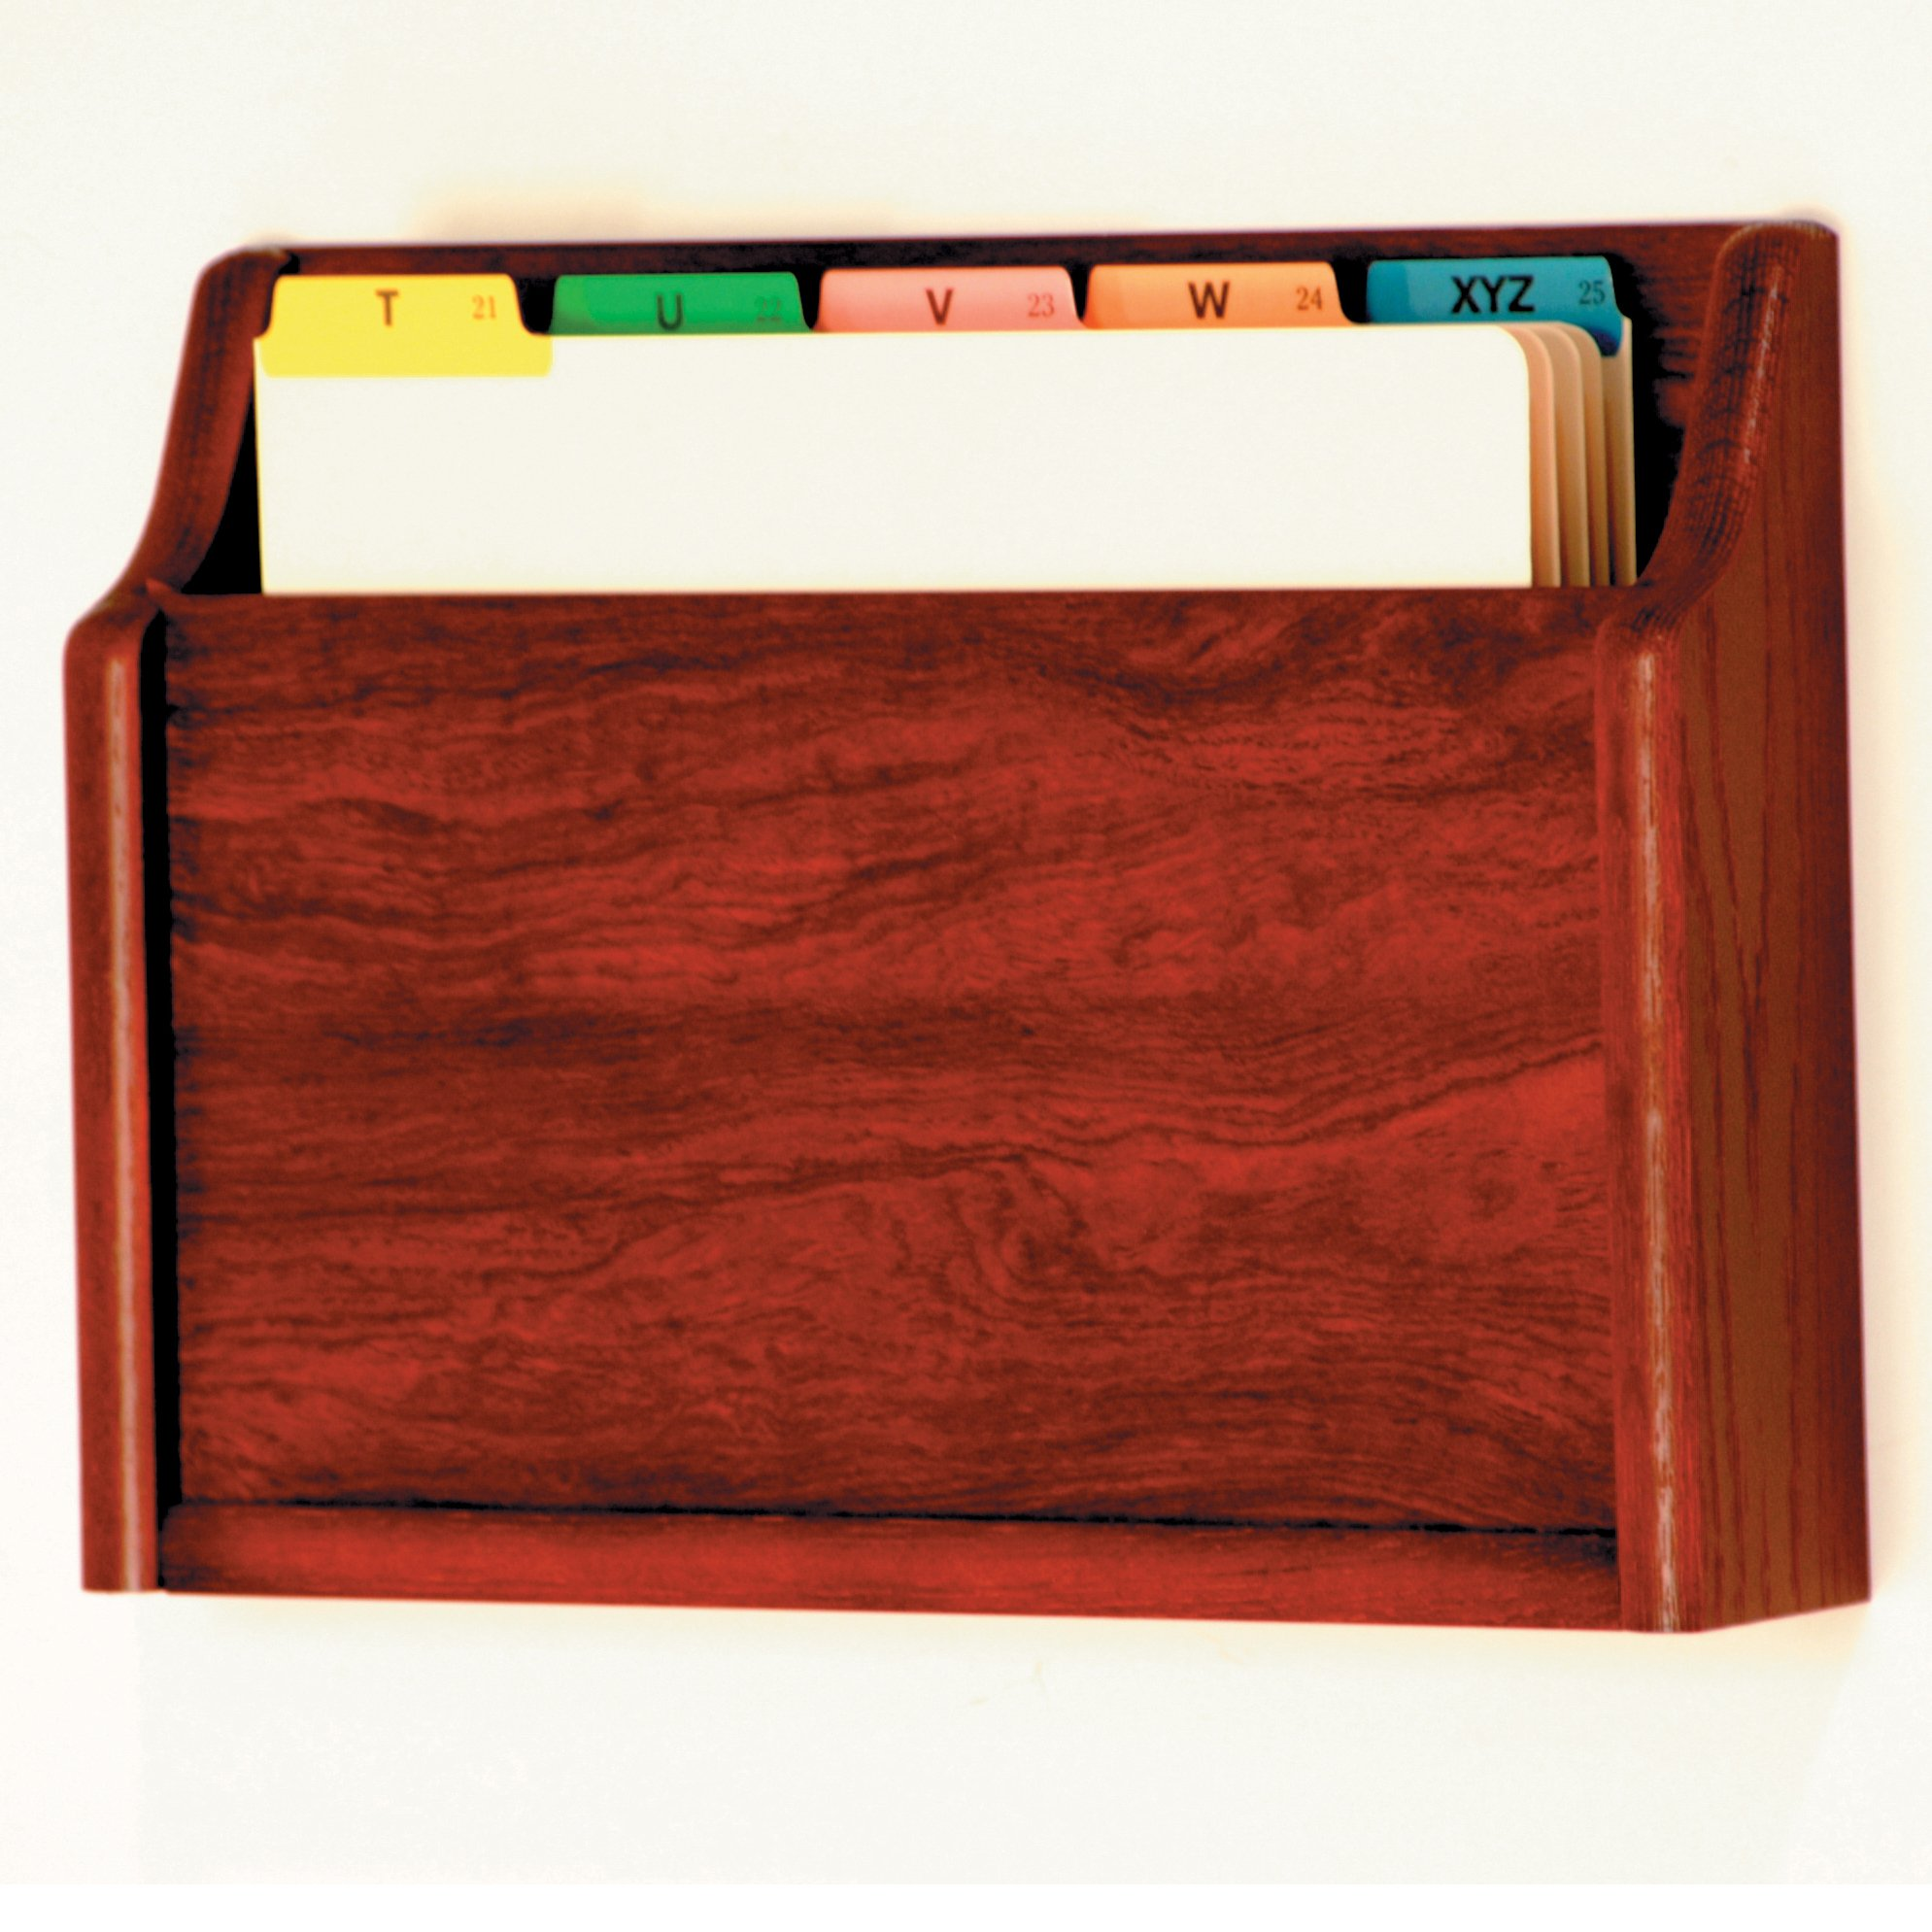 DMD Letter Size Wood Chart or File Holder, Square Bottom, Single Pocket, Wall or Desktop, Oak with Mahogany Finish